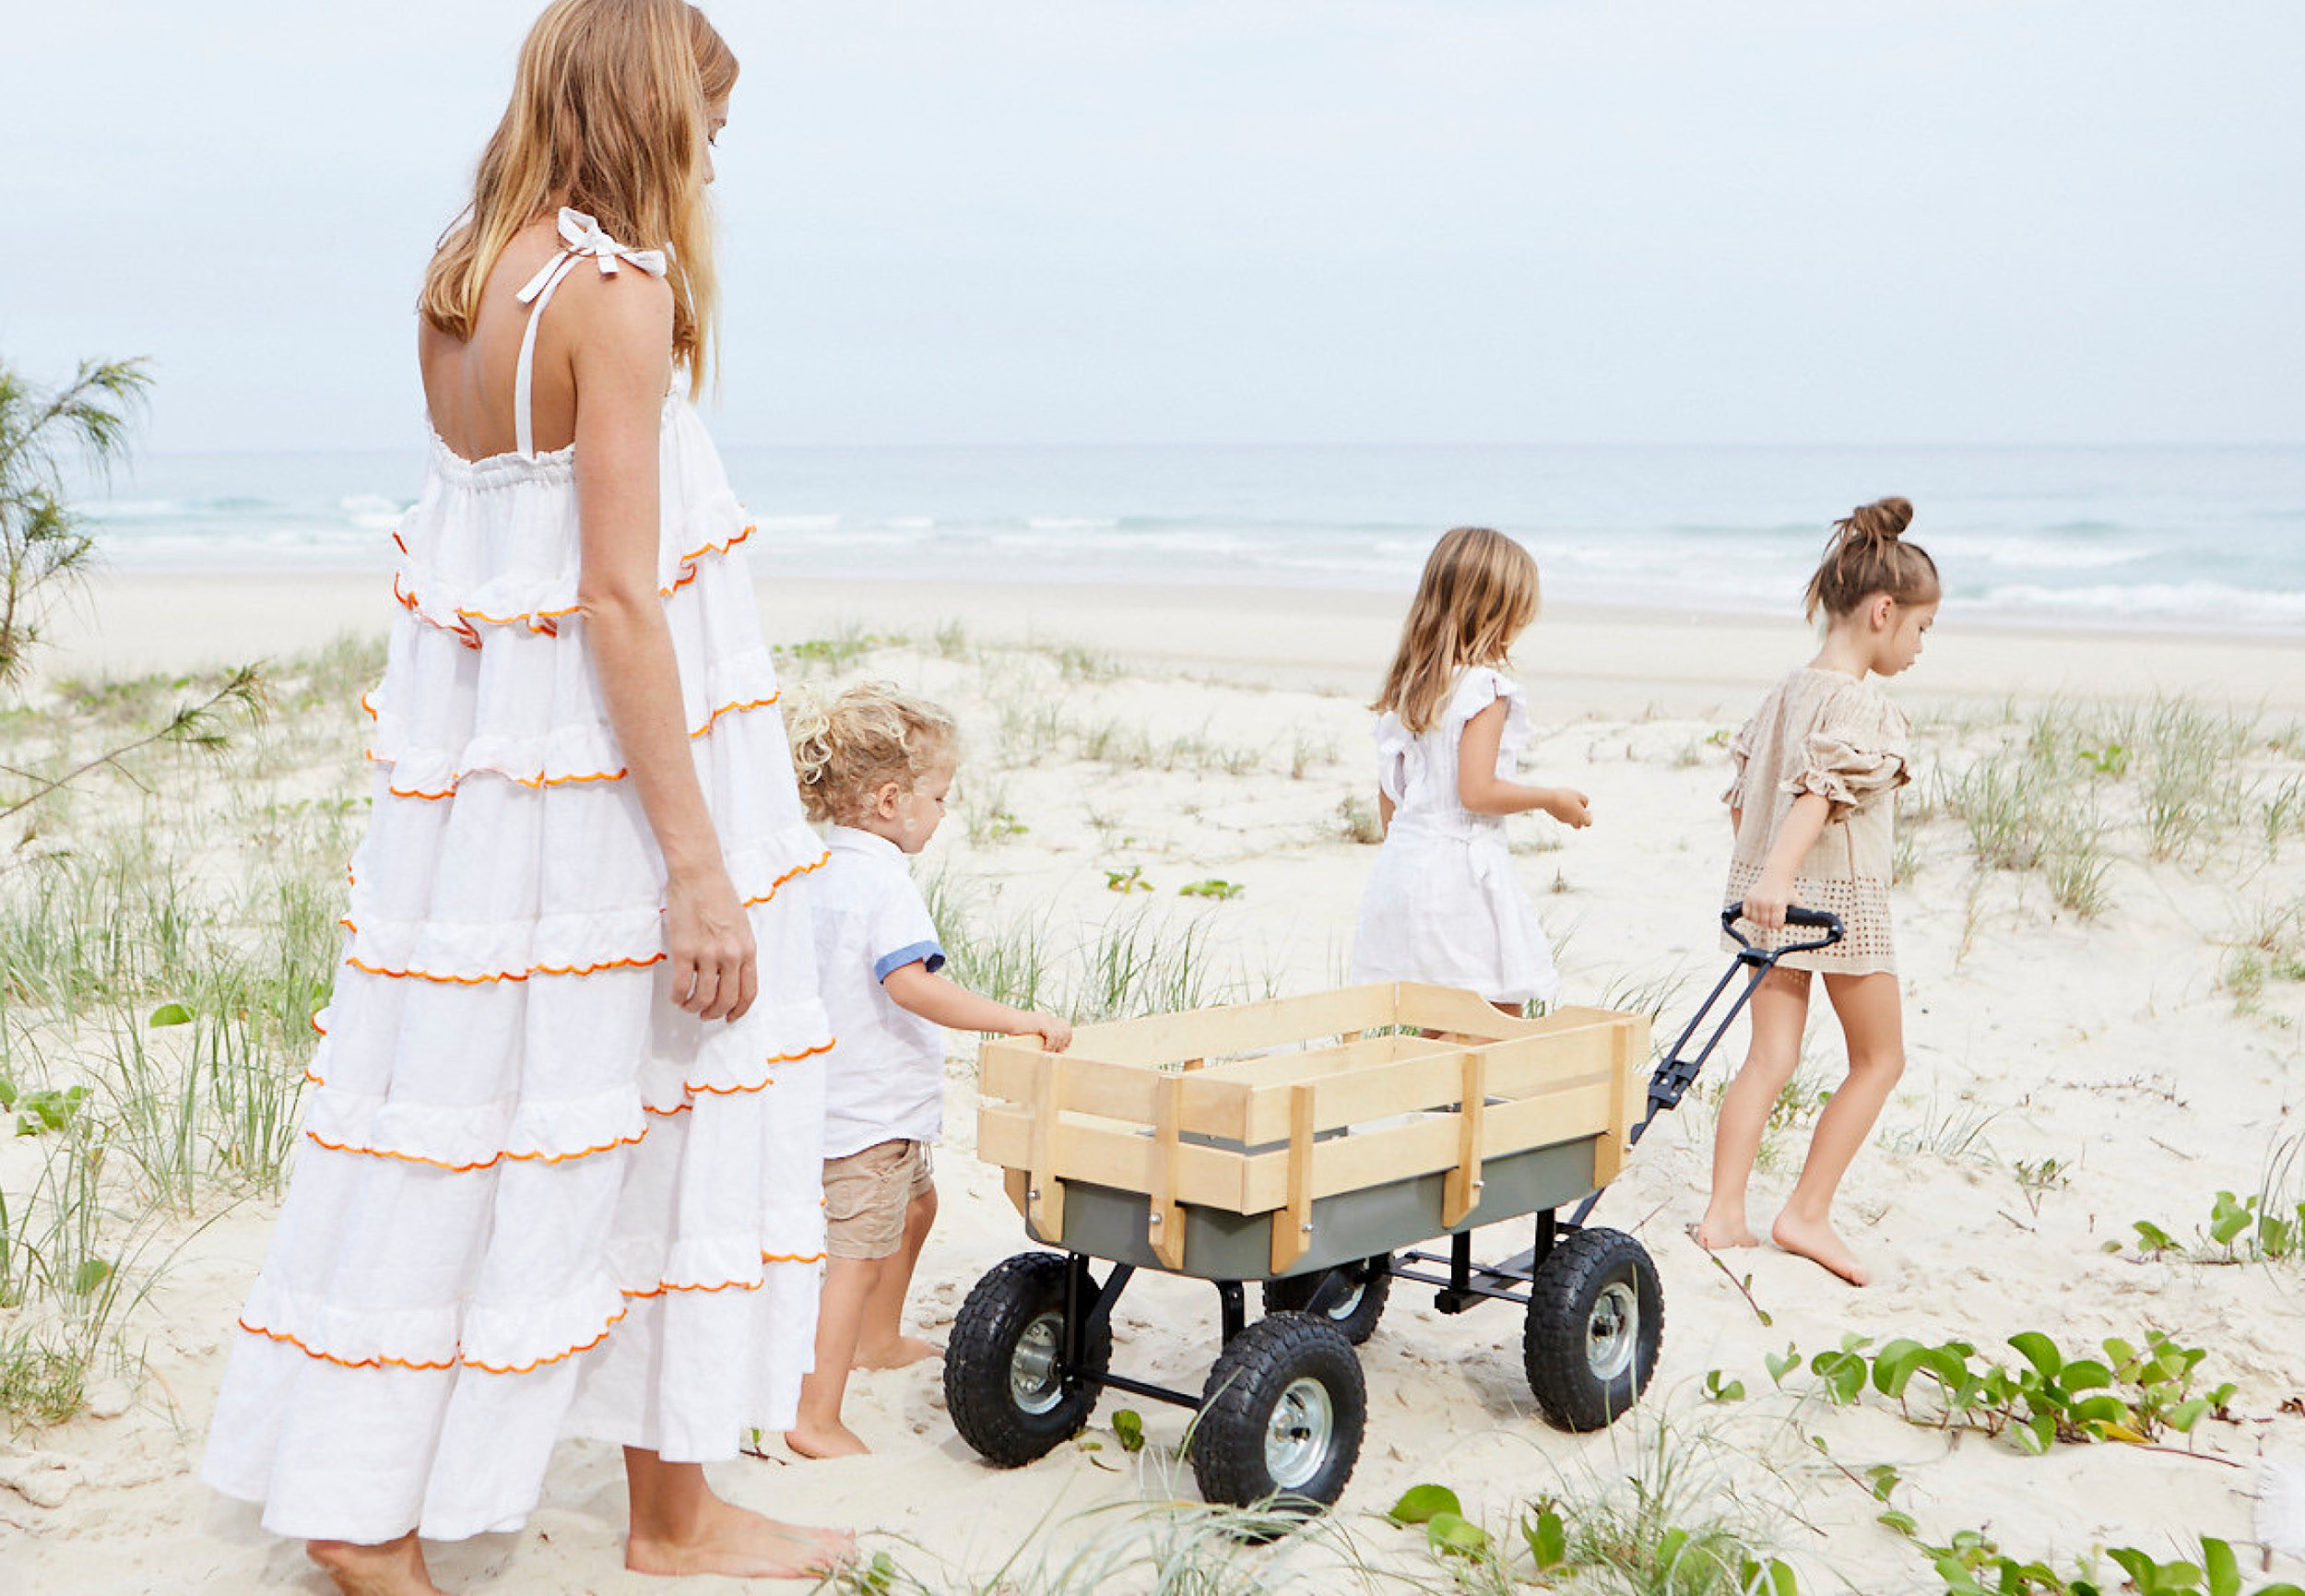 TBP_Journal_04_BeachCart.jpg